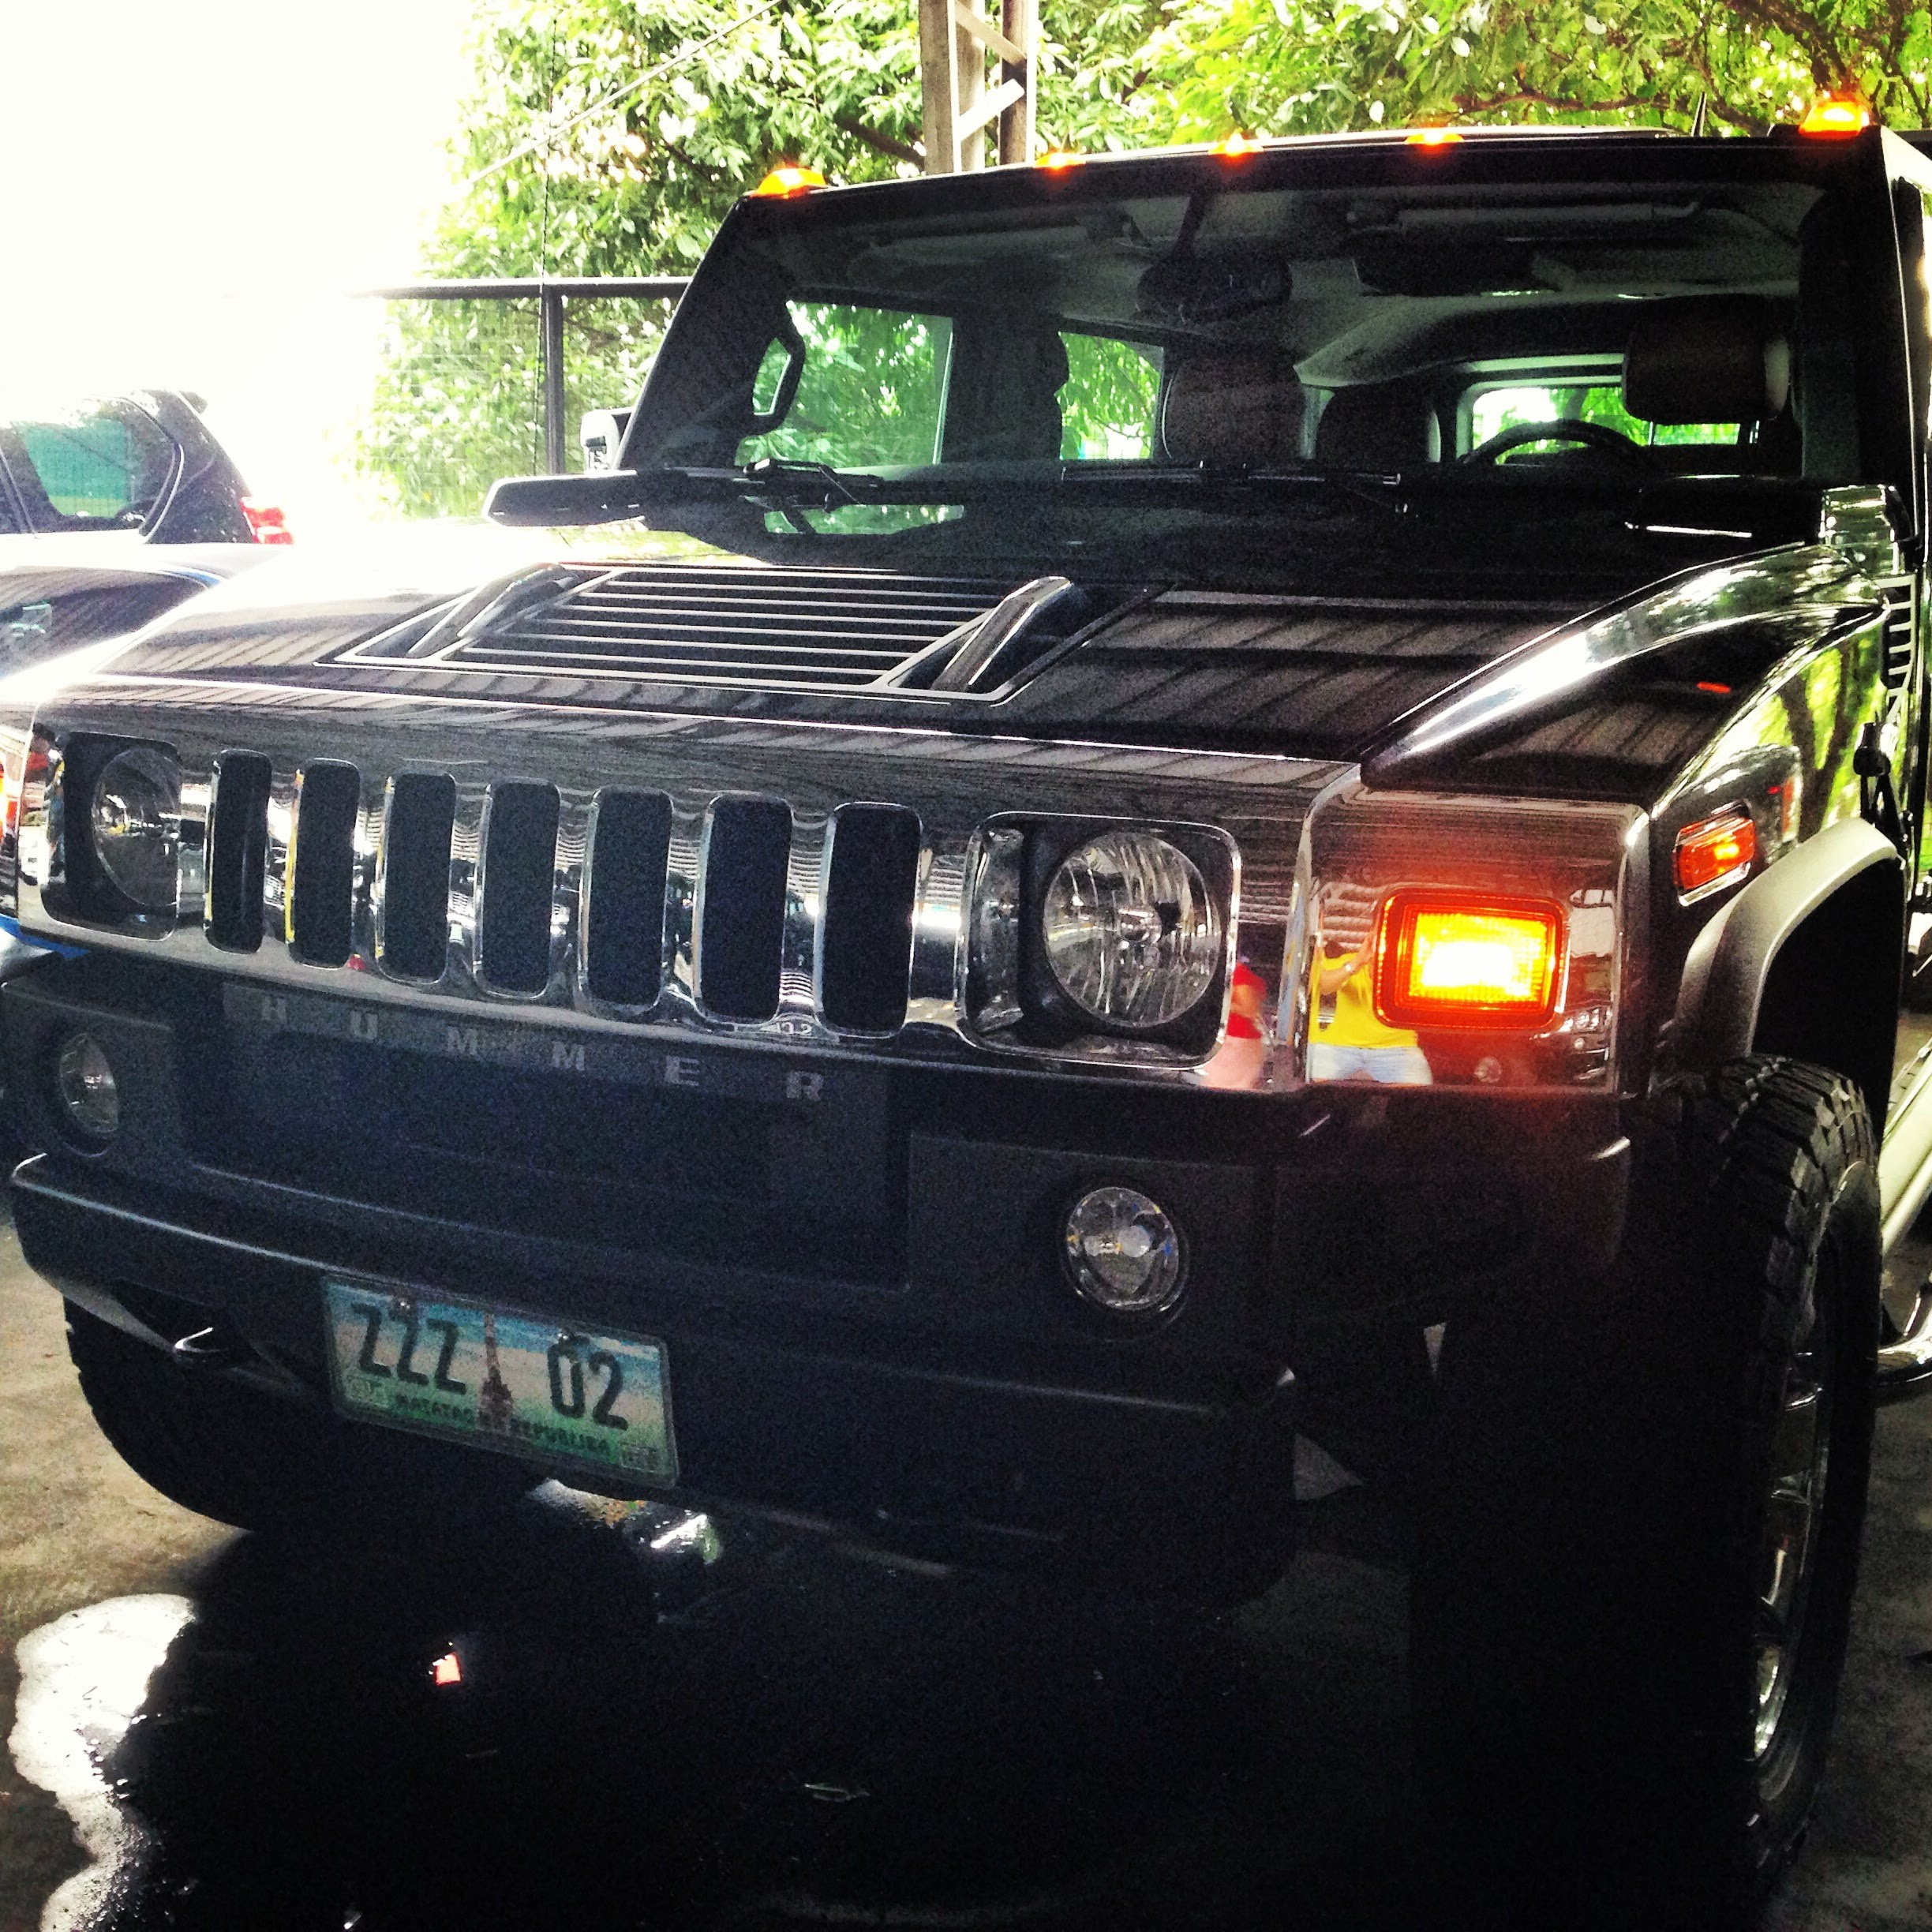 2009 gm hummer h2 6 2l v8 for sale 9 million by manila luxury cars hour philippines tv